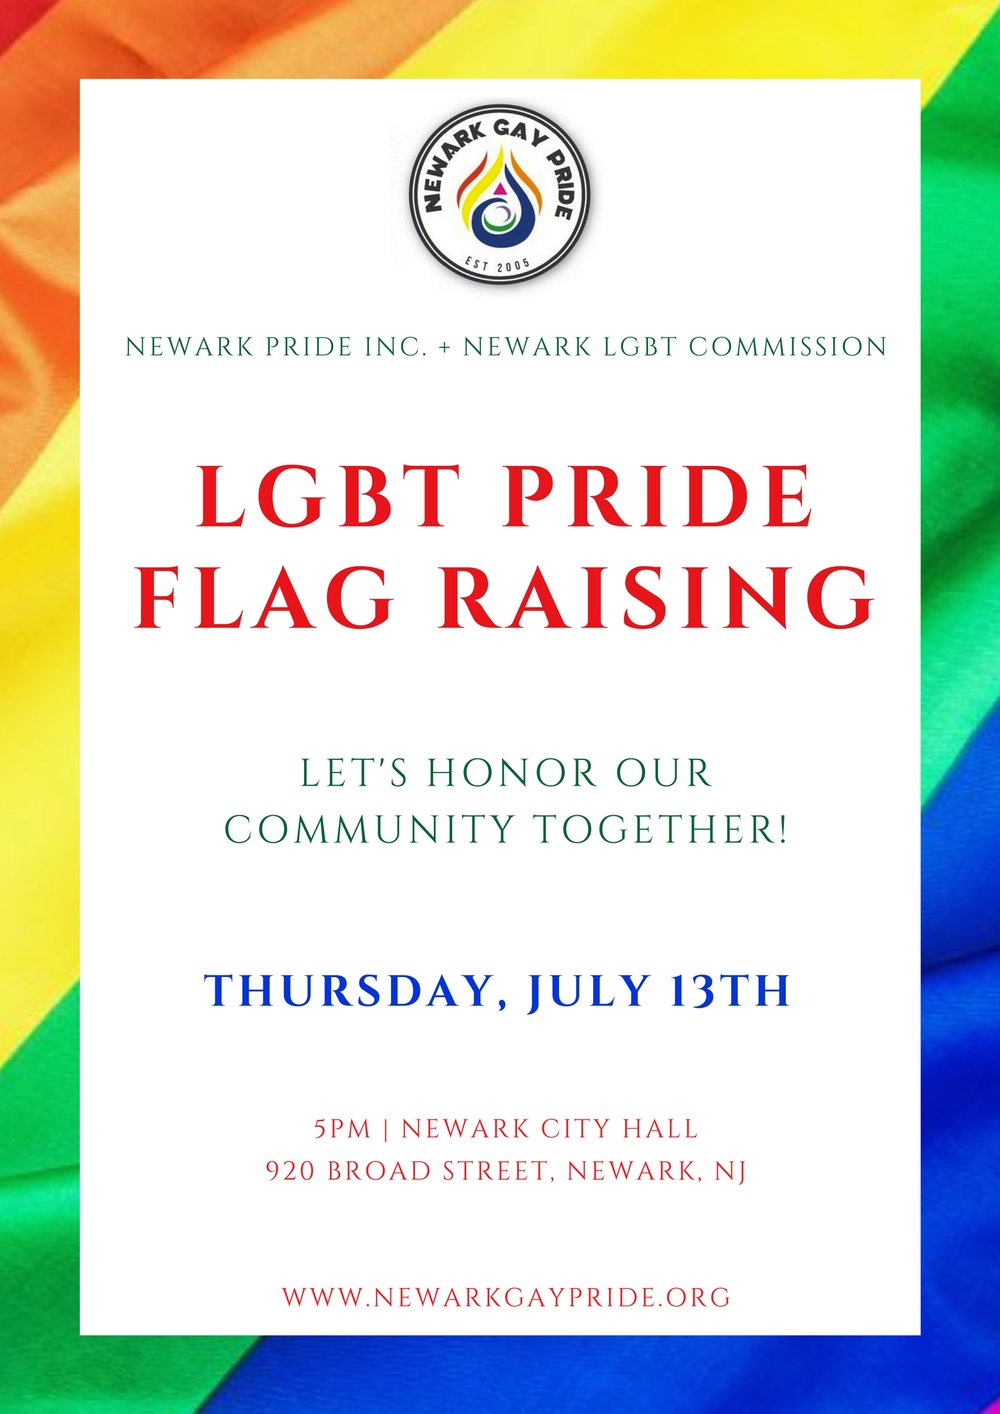 Thursday, July 13th - 5:30pm - 6:30pmNewark City Hall920 Broad Street, Newark, NJFree, all are invited!The rainbow flag, a universal symbol of gay pride, will fly outside Newark City Hall for the duration of our #PowerInPride celebration. The city has made a firm commitment to supporting the needs and equality of the LGBTQ community, please come out and join us for this annual event that kicks off Newark Gay Pride.